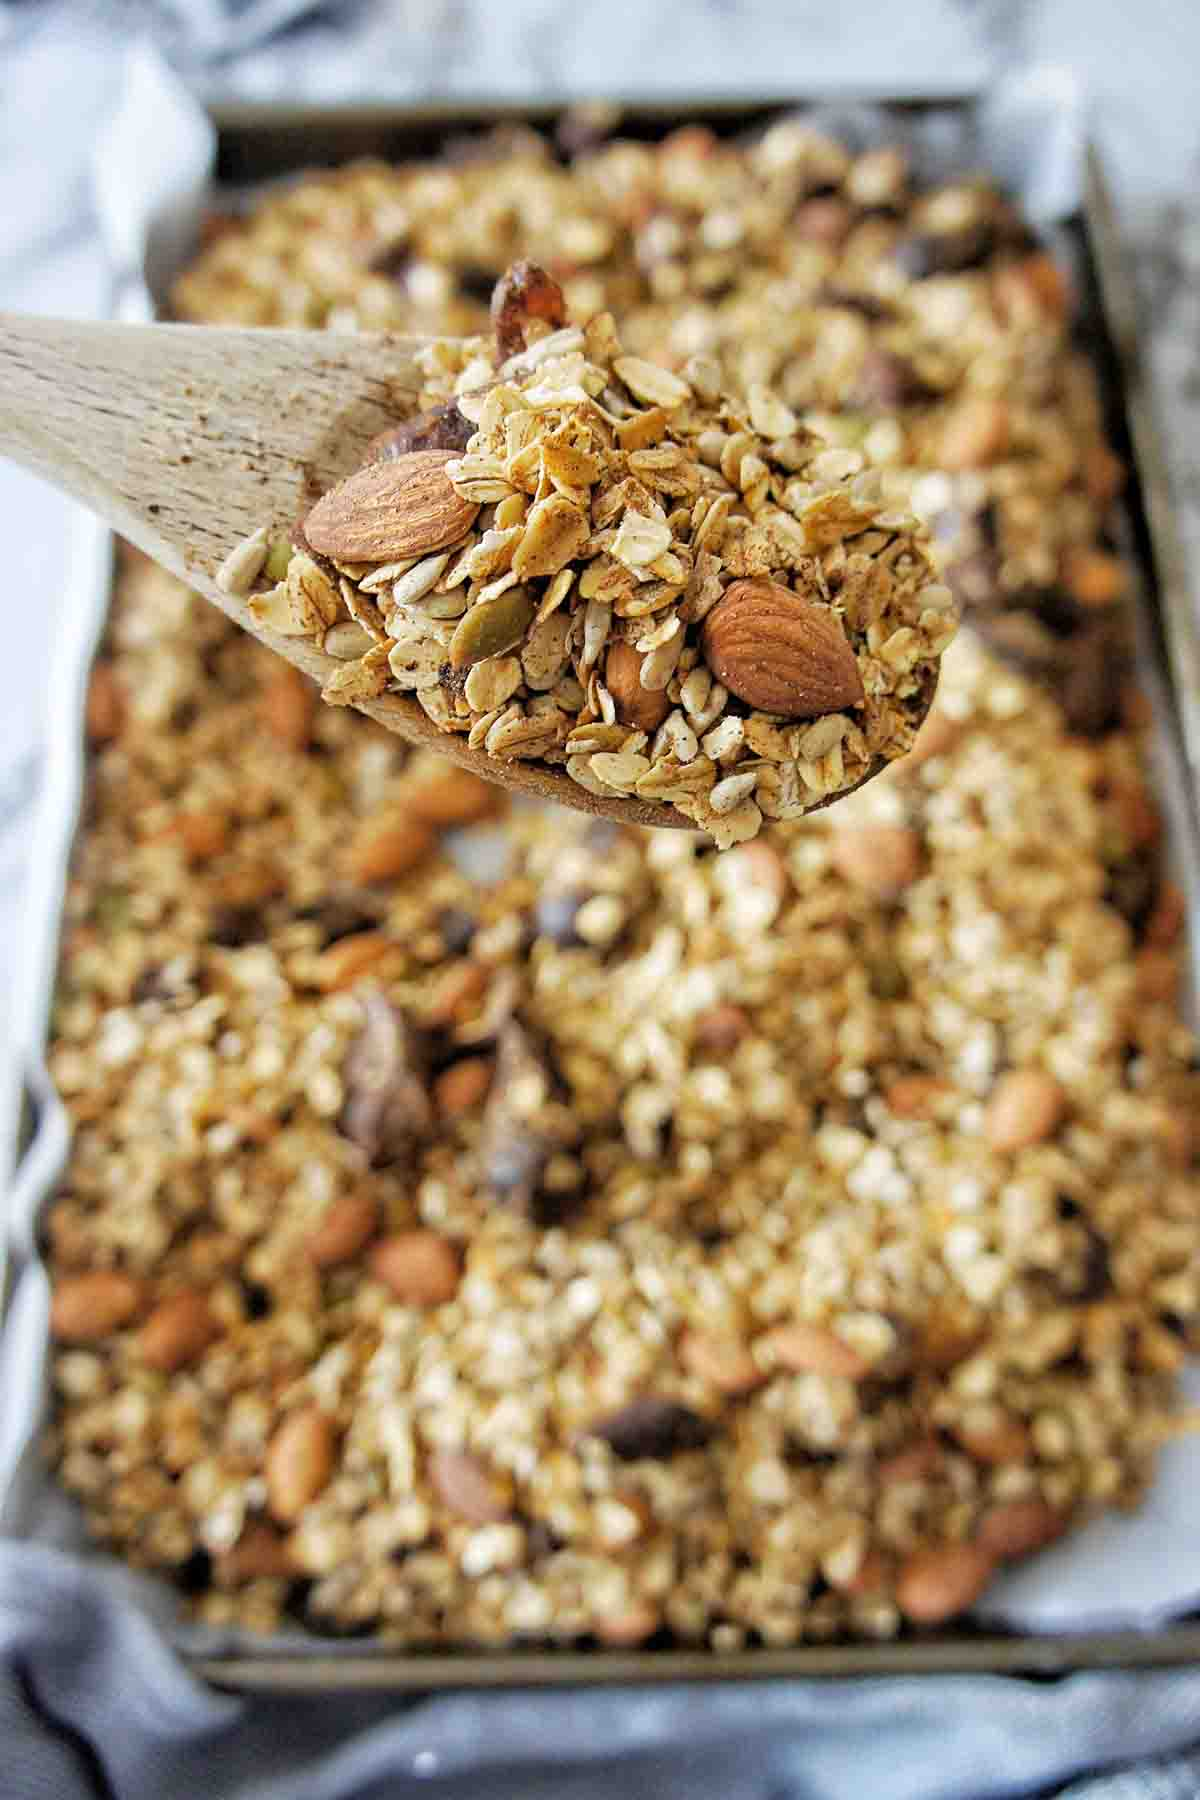 Spoon of slow cooked granola above a baking tray of the same